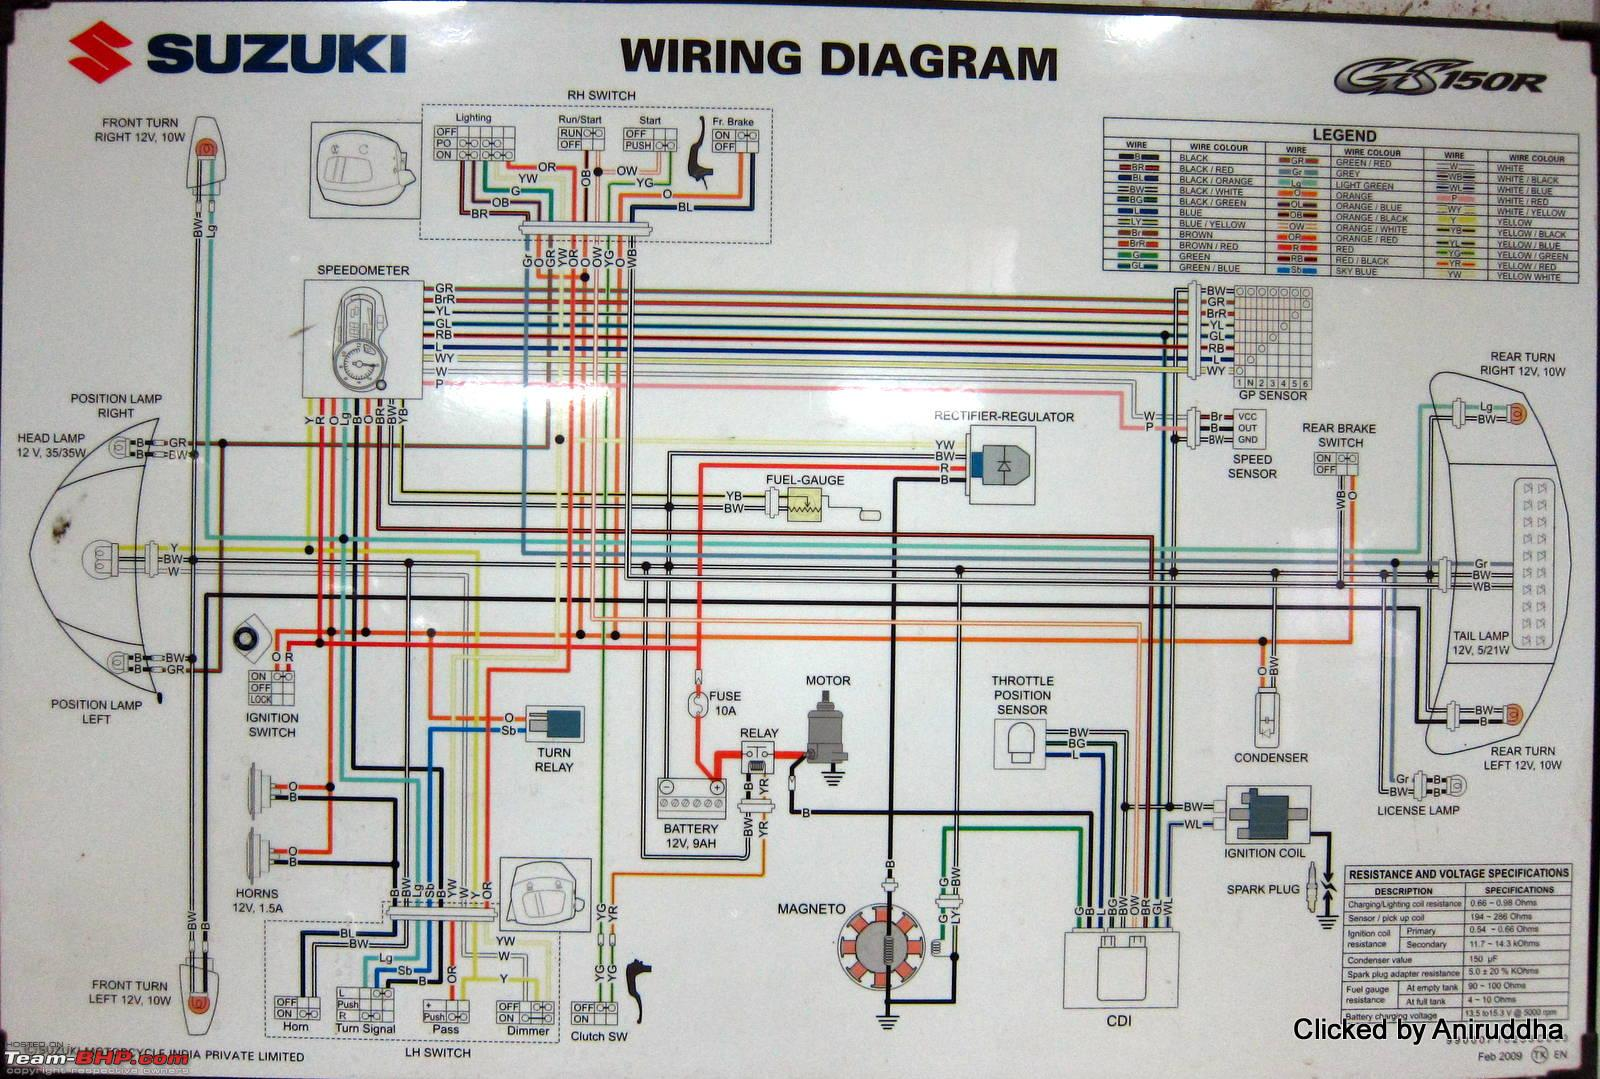 887402d1329132985 circuit diagrams indian motorcycles scooters img_0717 circuit diagrams of indian motorcycles and scooters team bhp suzuki samurai wiring diagrams asfachs at alyssarenee.co